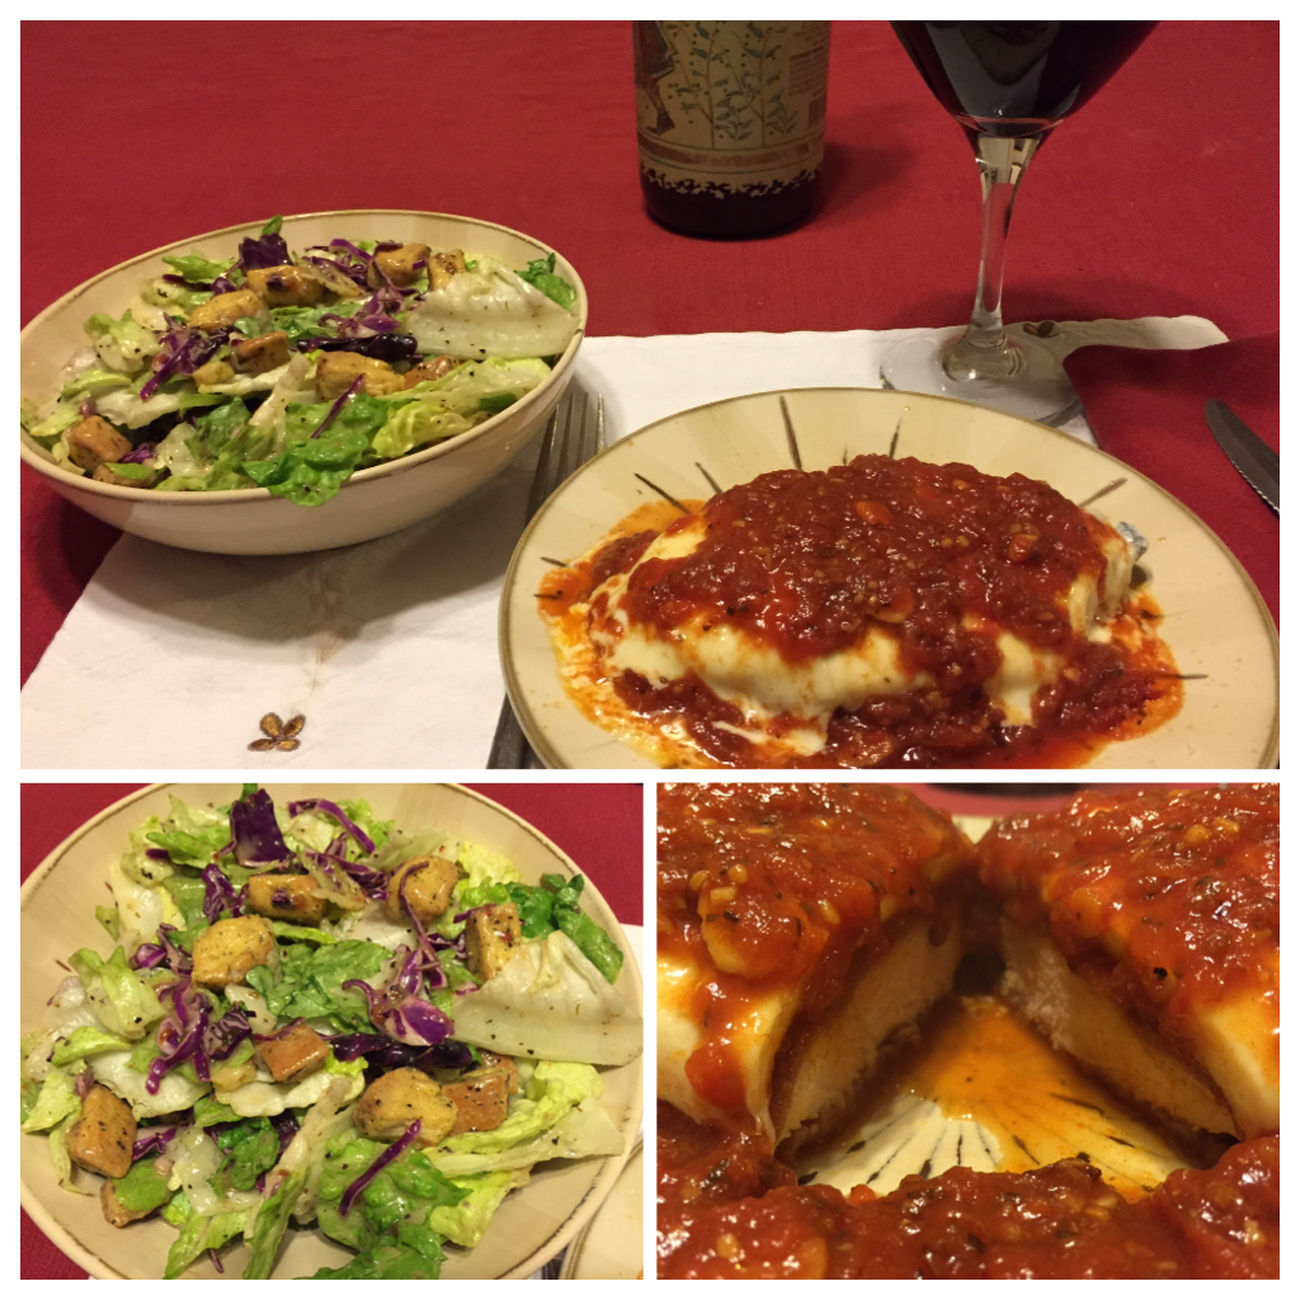 Chicken Parmesan with a nice salad and a bottle of my homemade 2013 Chilean Cabernet Sauvignon/Merlot blend wine ICanCookMyAssOff Nomnombomb TheExpensiveWinos MyFoodPics